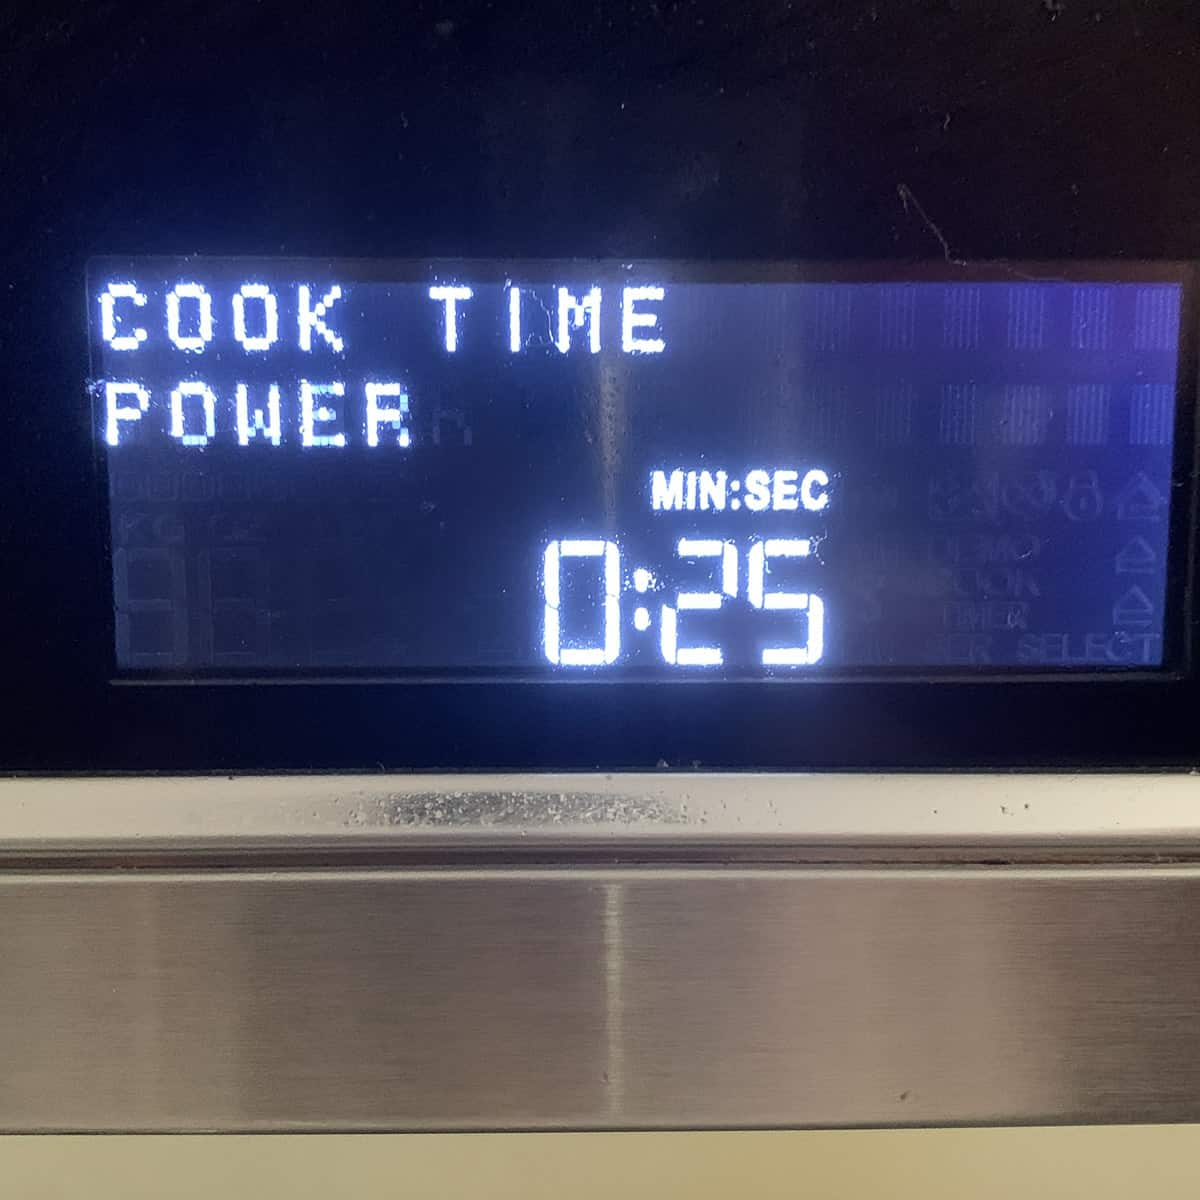 view of microwave timer set to 25 seconds